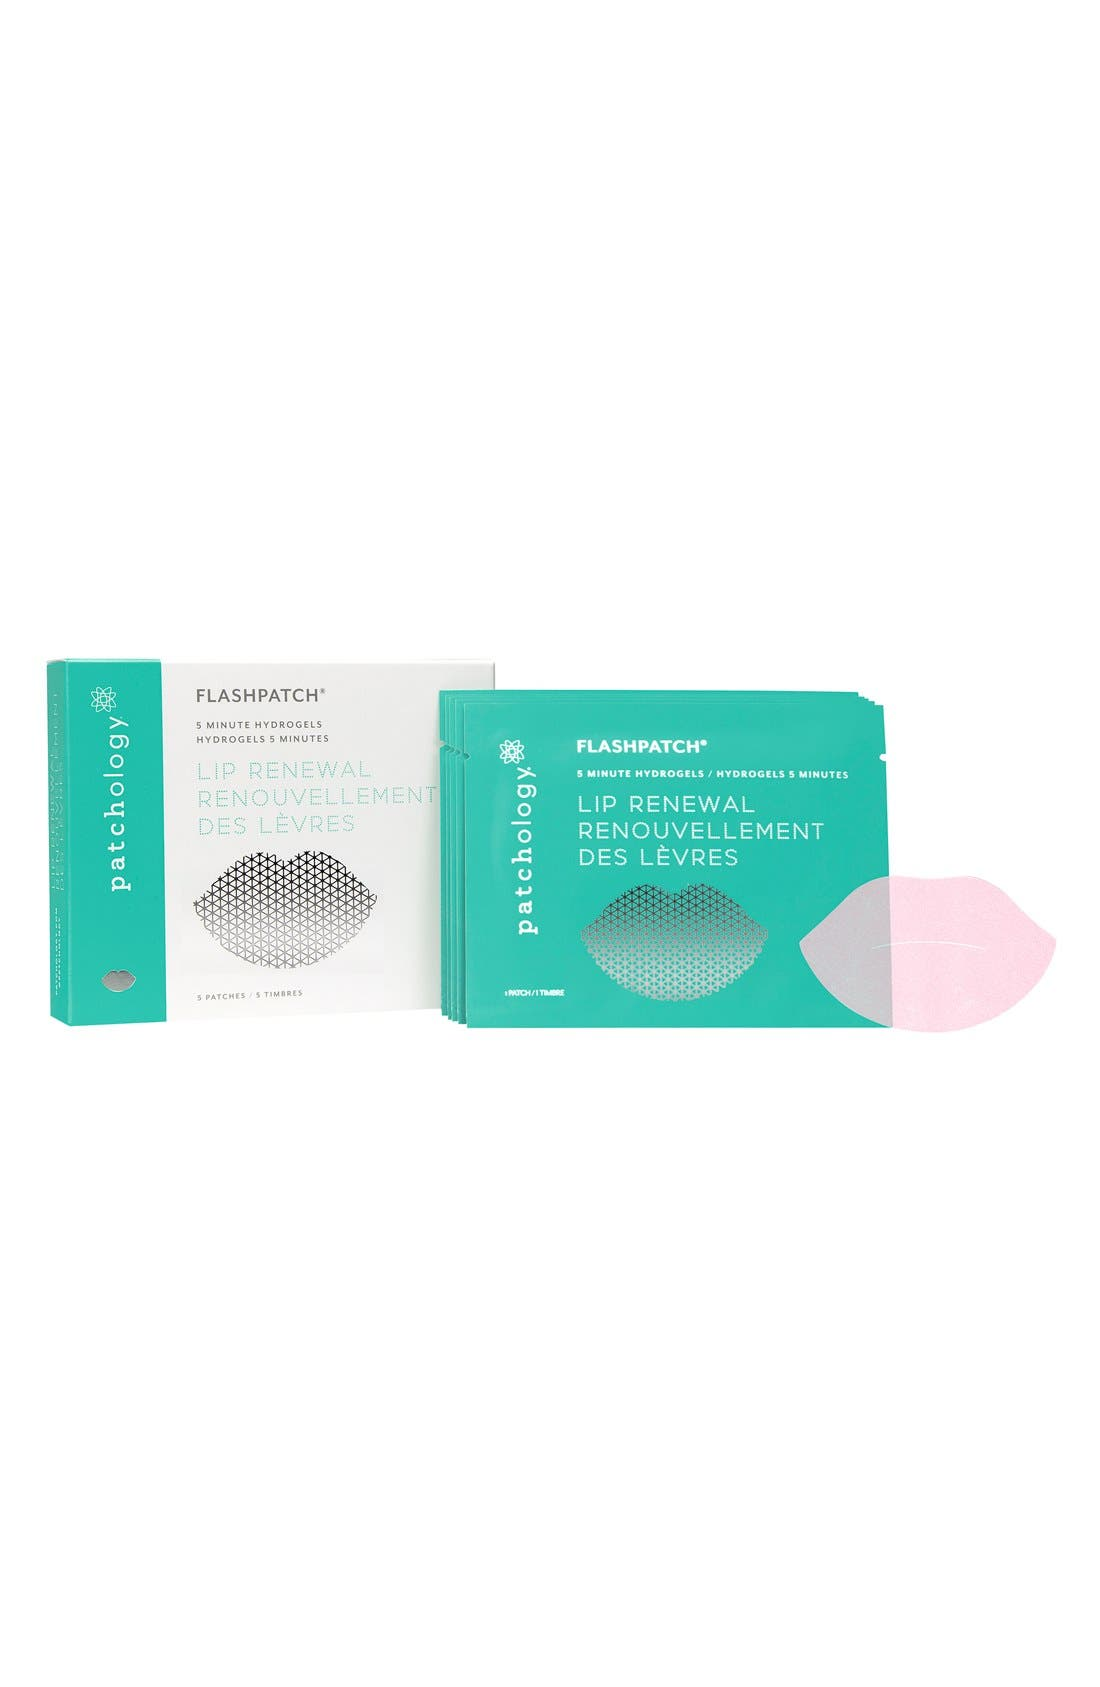 patchology Lip Renewal FlashPatch™ Lip Gels